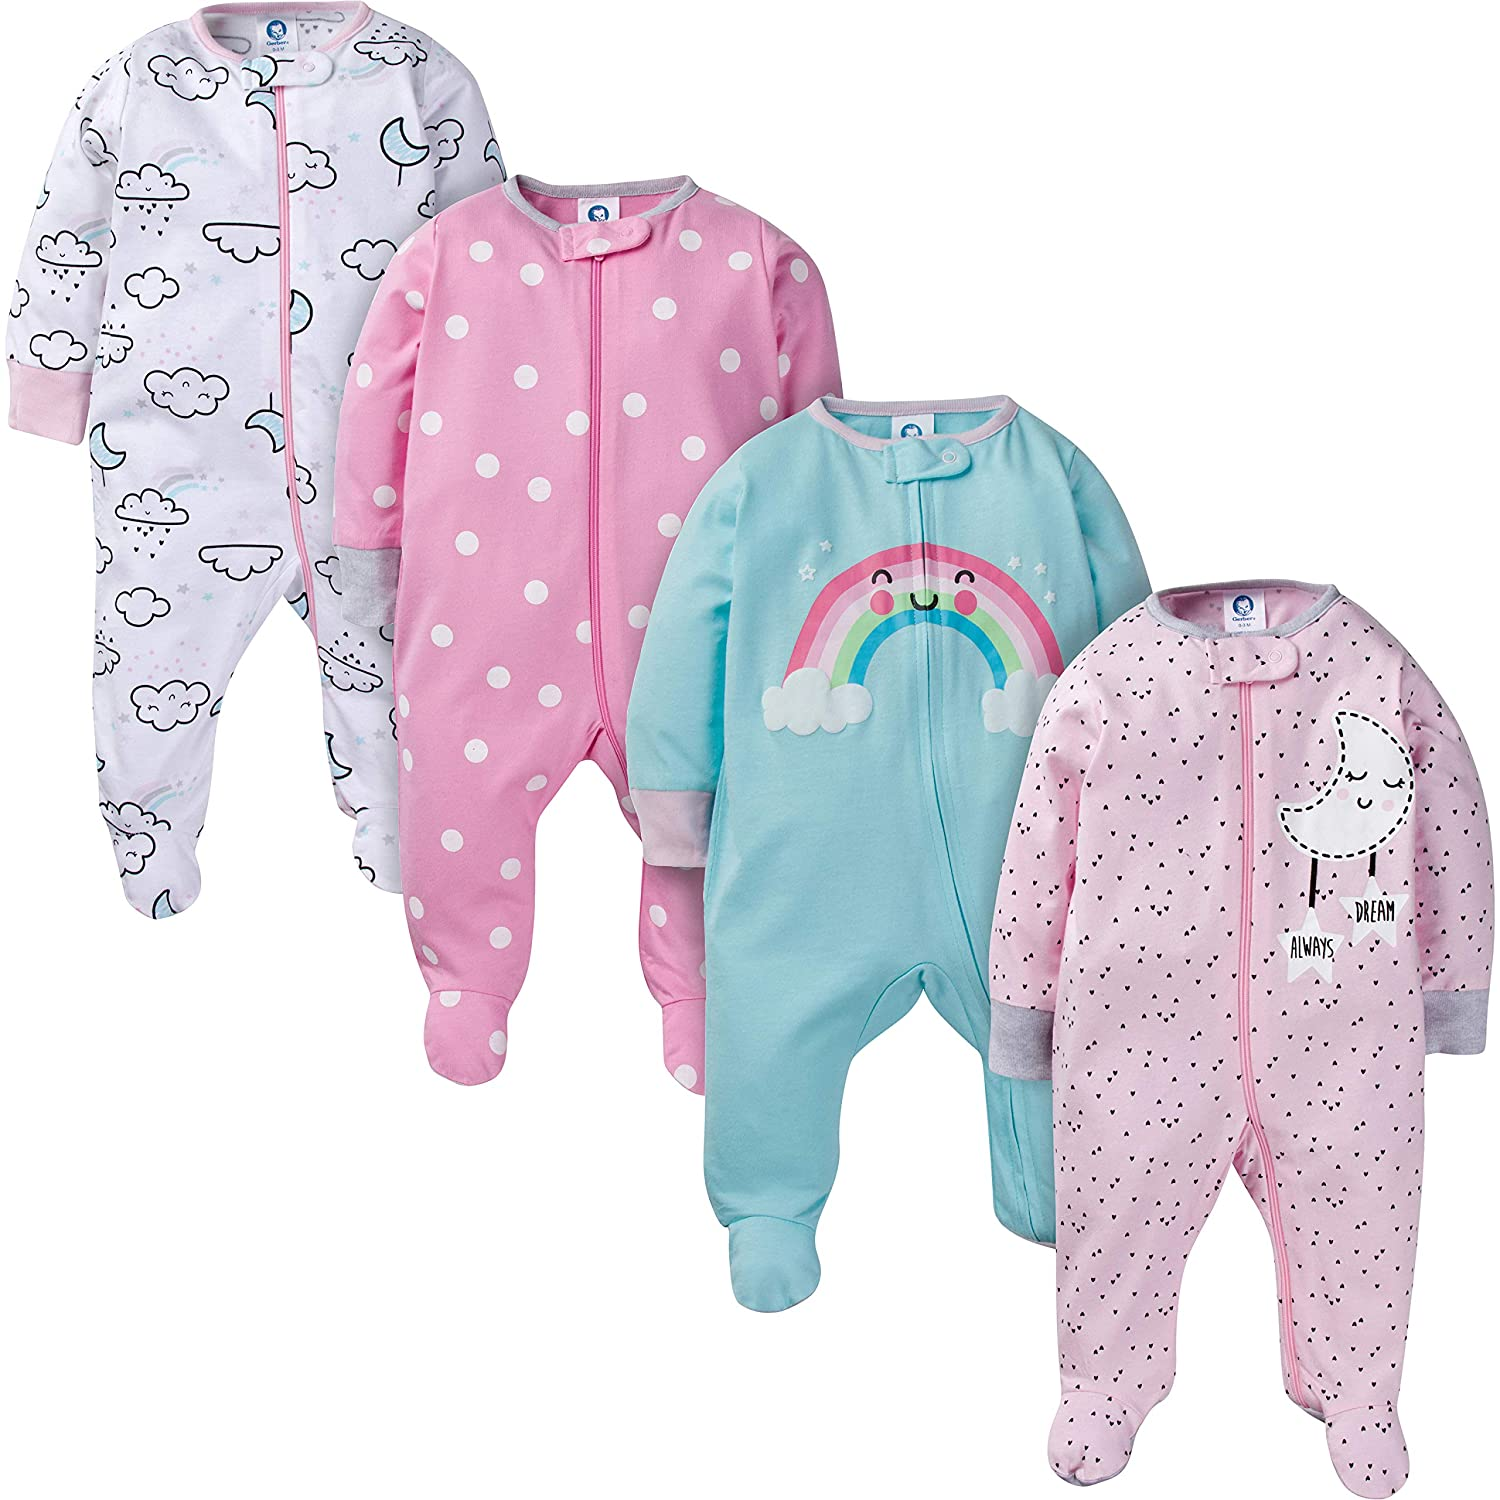 Gerber Baby Girls 4-Pack Sleep 'N Play